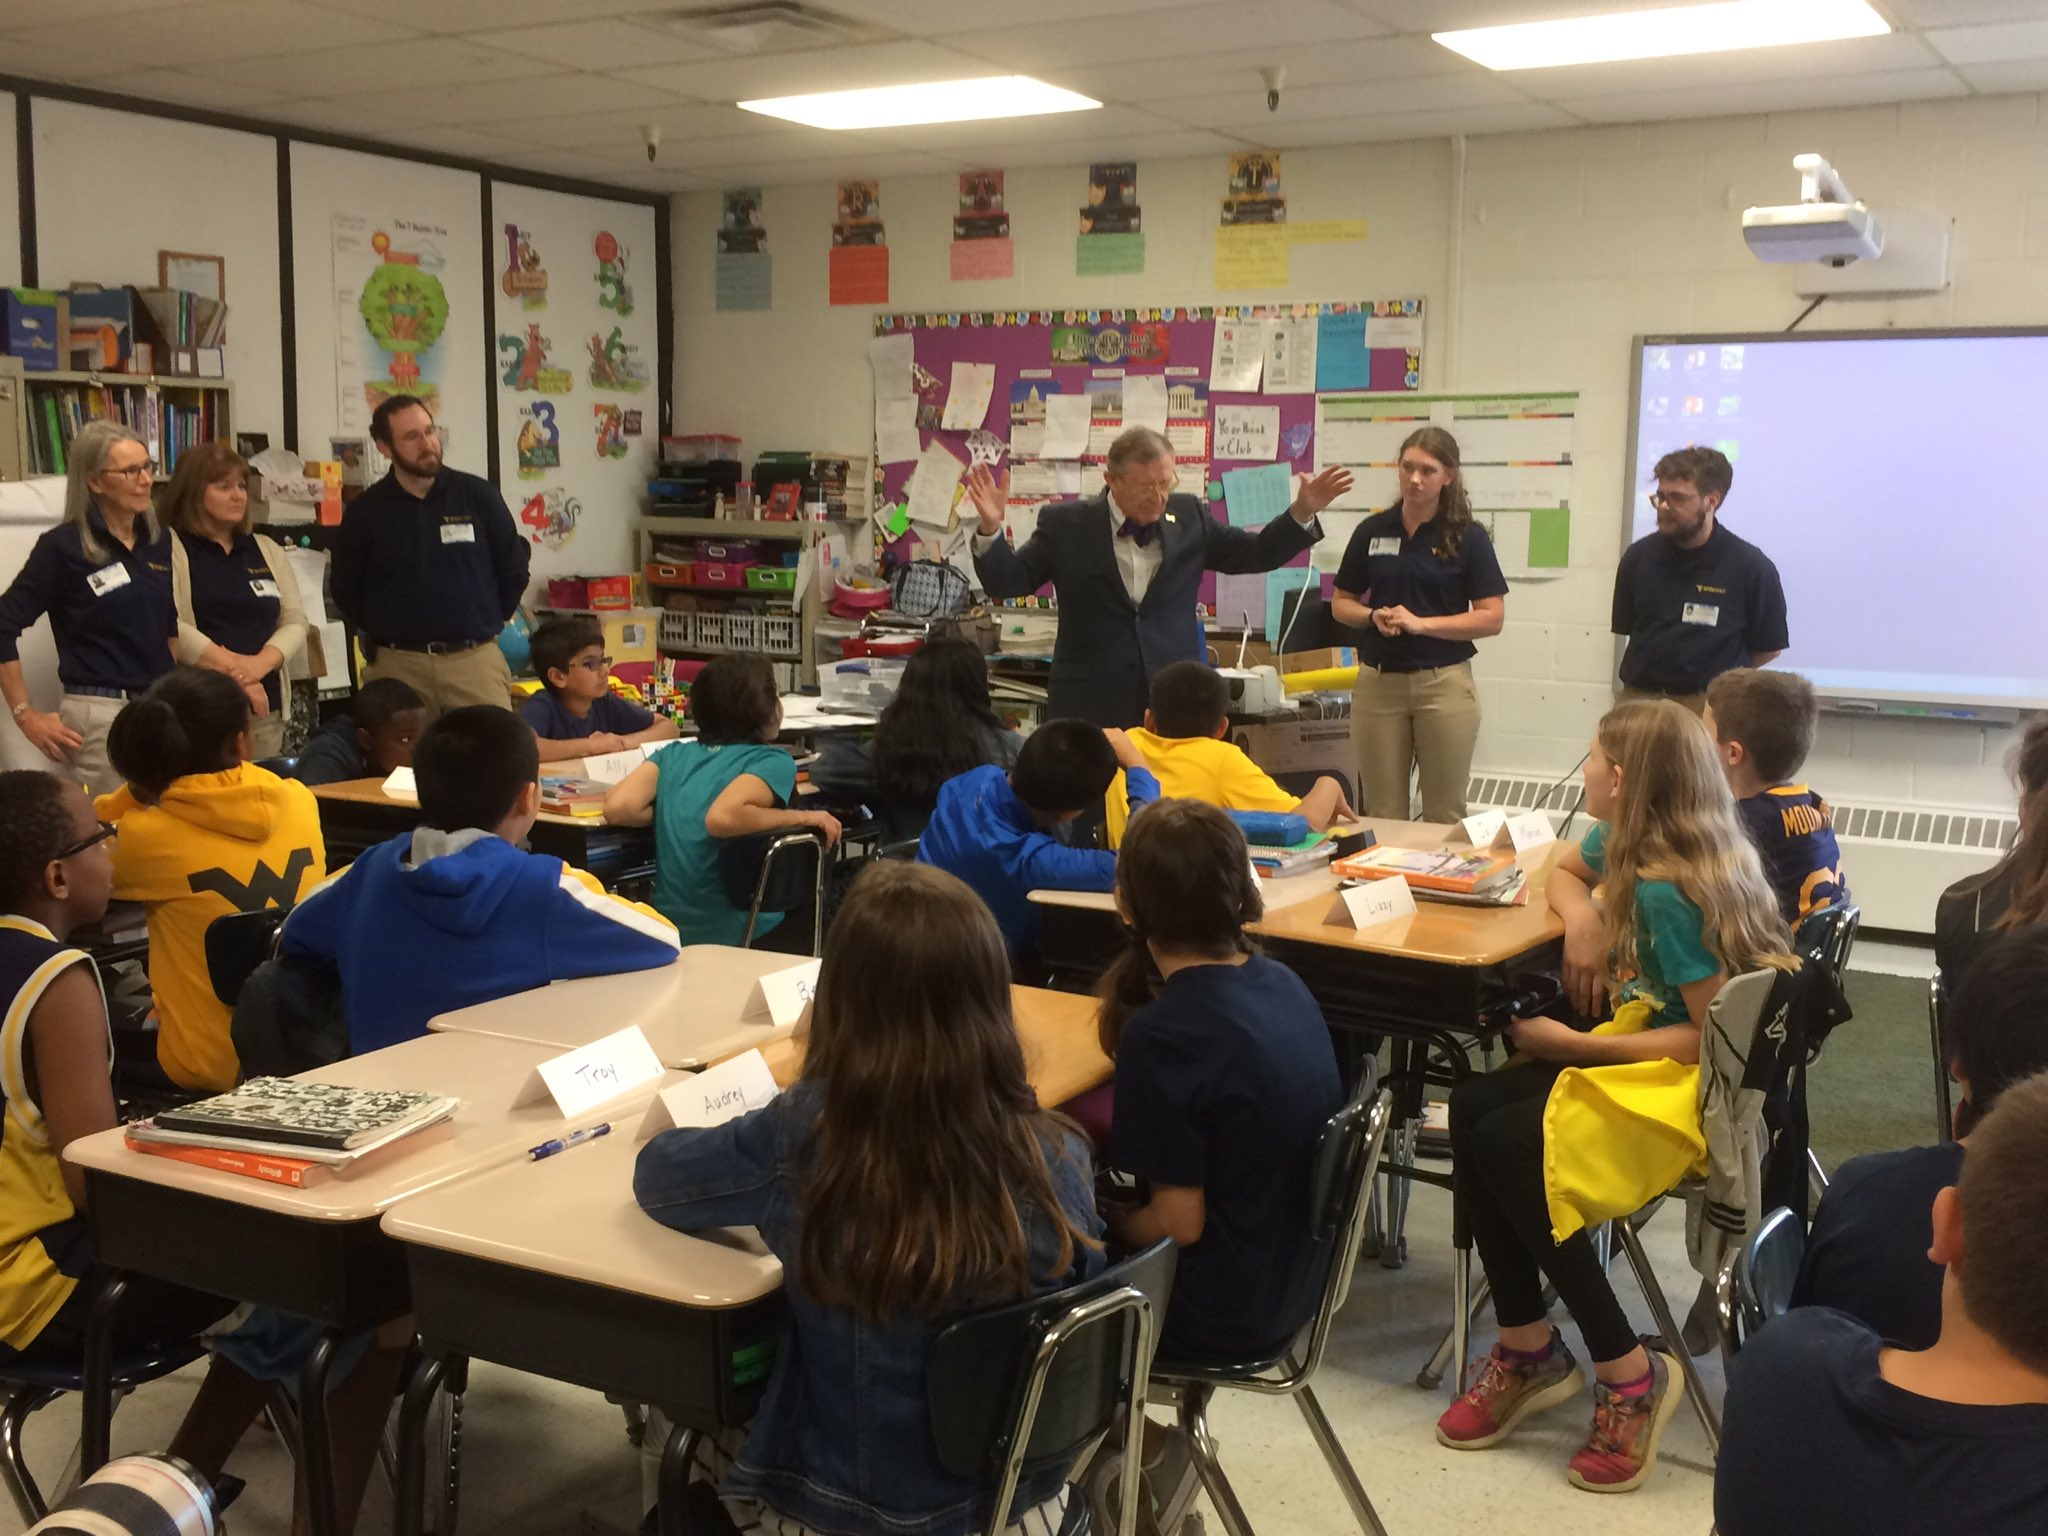 WVUteach students and President Gee are giving a group of 5th graders from North Elementary School a math lesson for WVUteach Day. https://t.co/3NMu2jGKF4